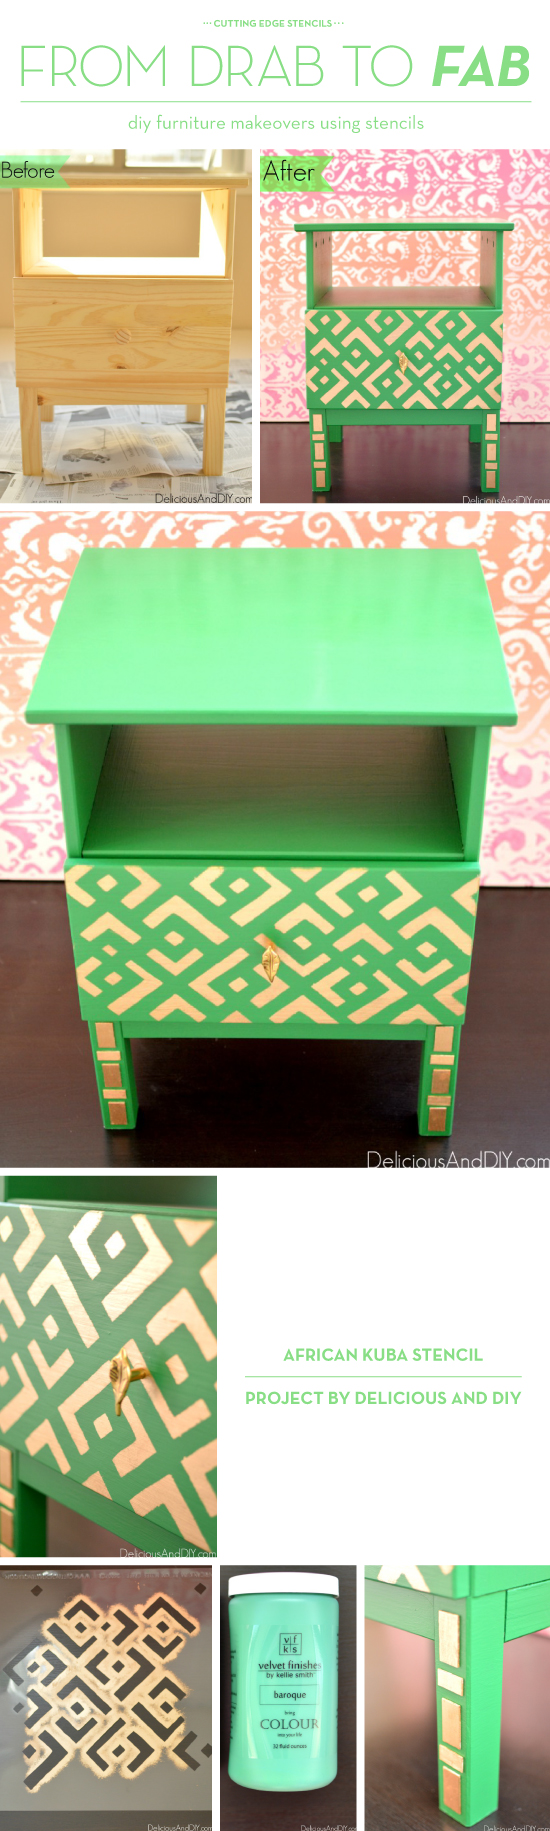 A DIY stenciled nightstand in gold and green using the African Kuba Craft Stencil from Cutting Edge Stencils. http://www.cuttingedgestencils.com/kuba-stencil-pattern-stencils.html